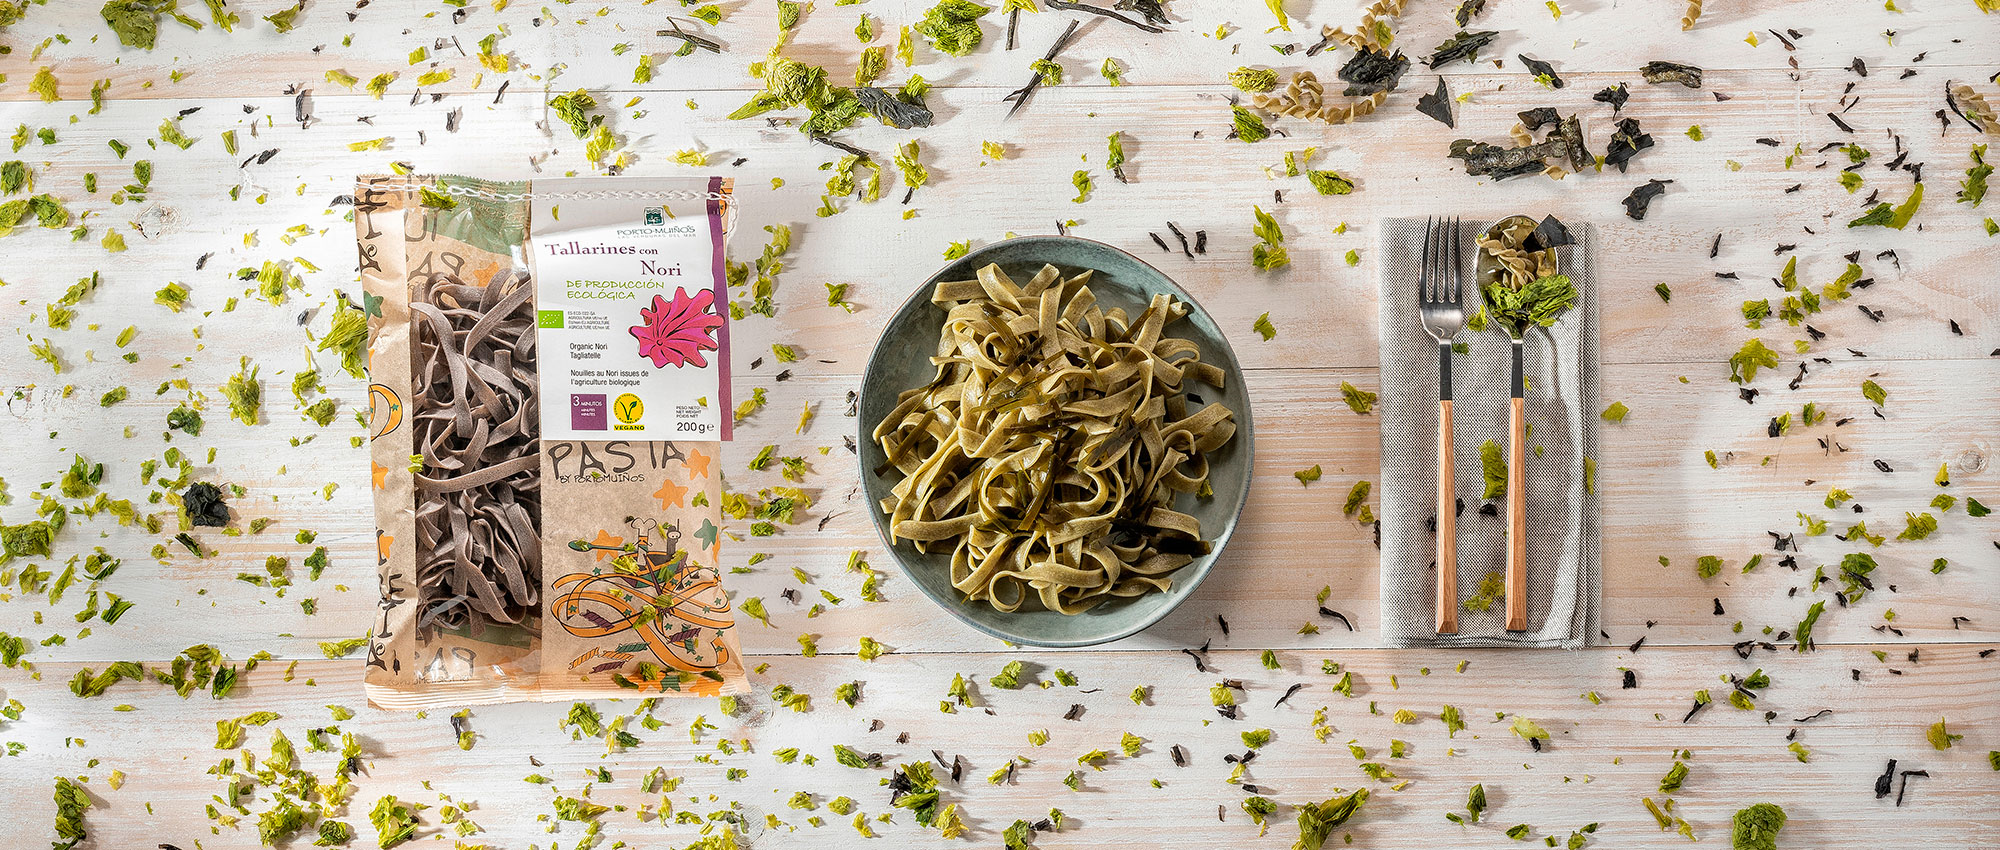 Pastas with seaweeds